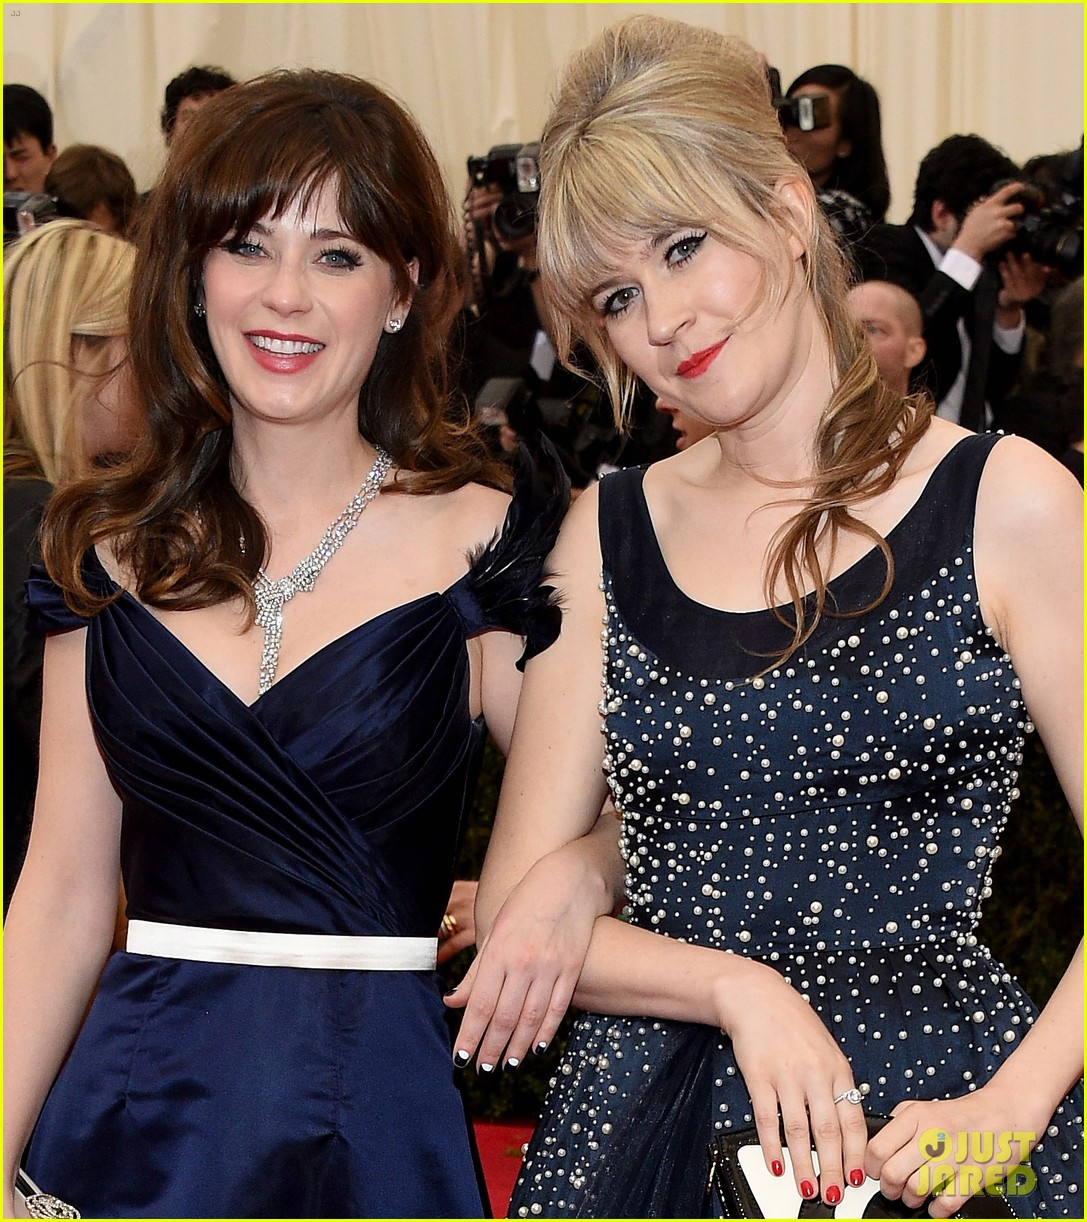 zooey deschanel represents tommy hilfiger on met ball 2014 red carpet 043106227